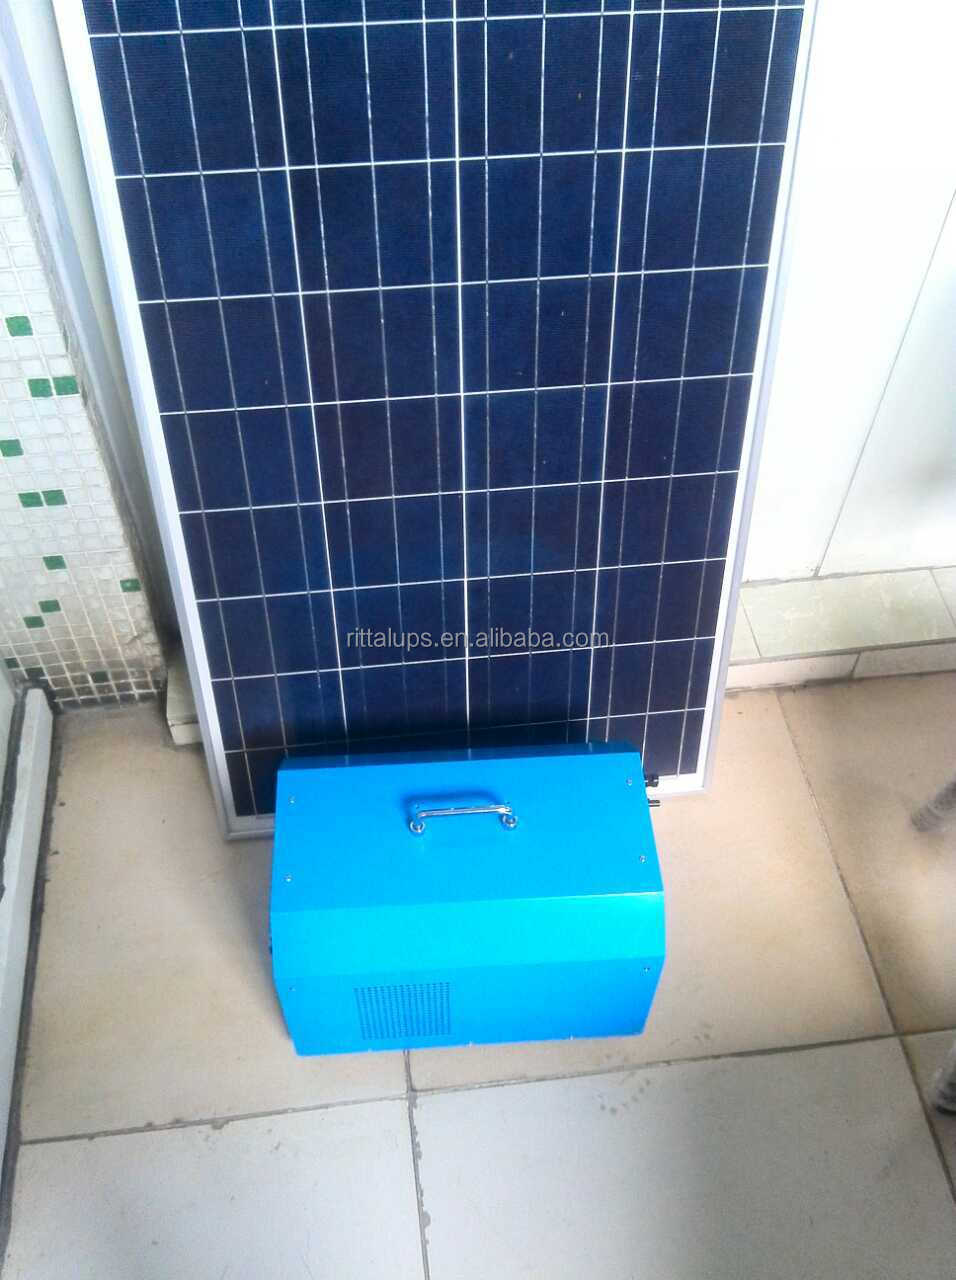 Good quality portable light solar panel system chrarge conventional AC applicances